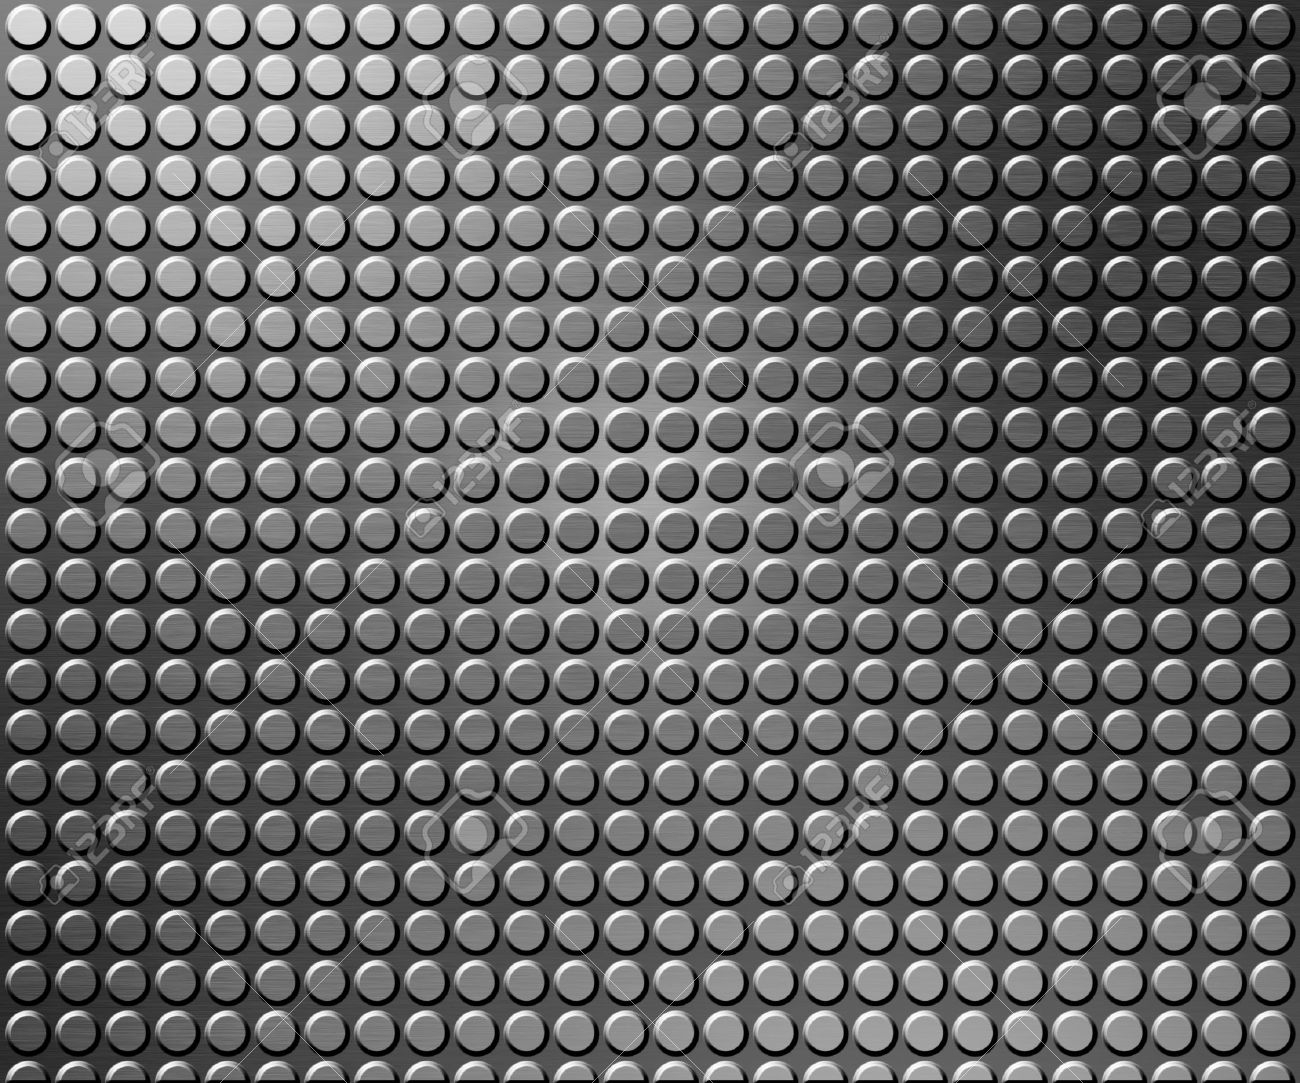 Metal Grid Pattern Texture